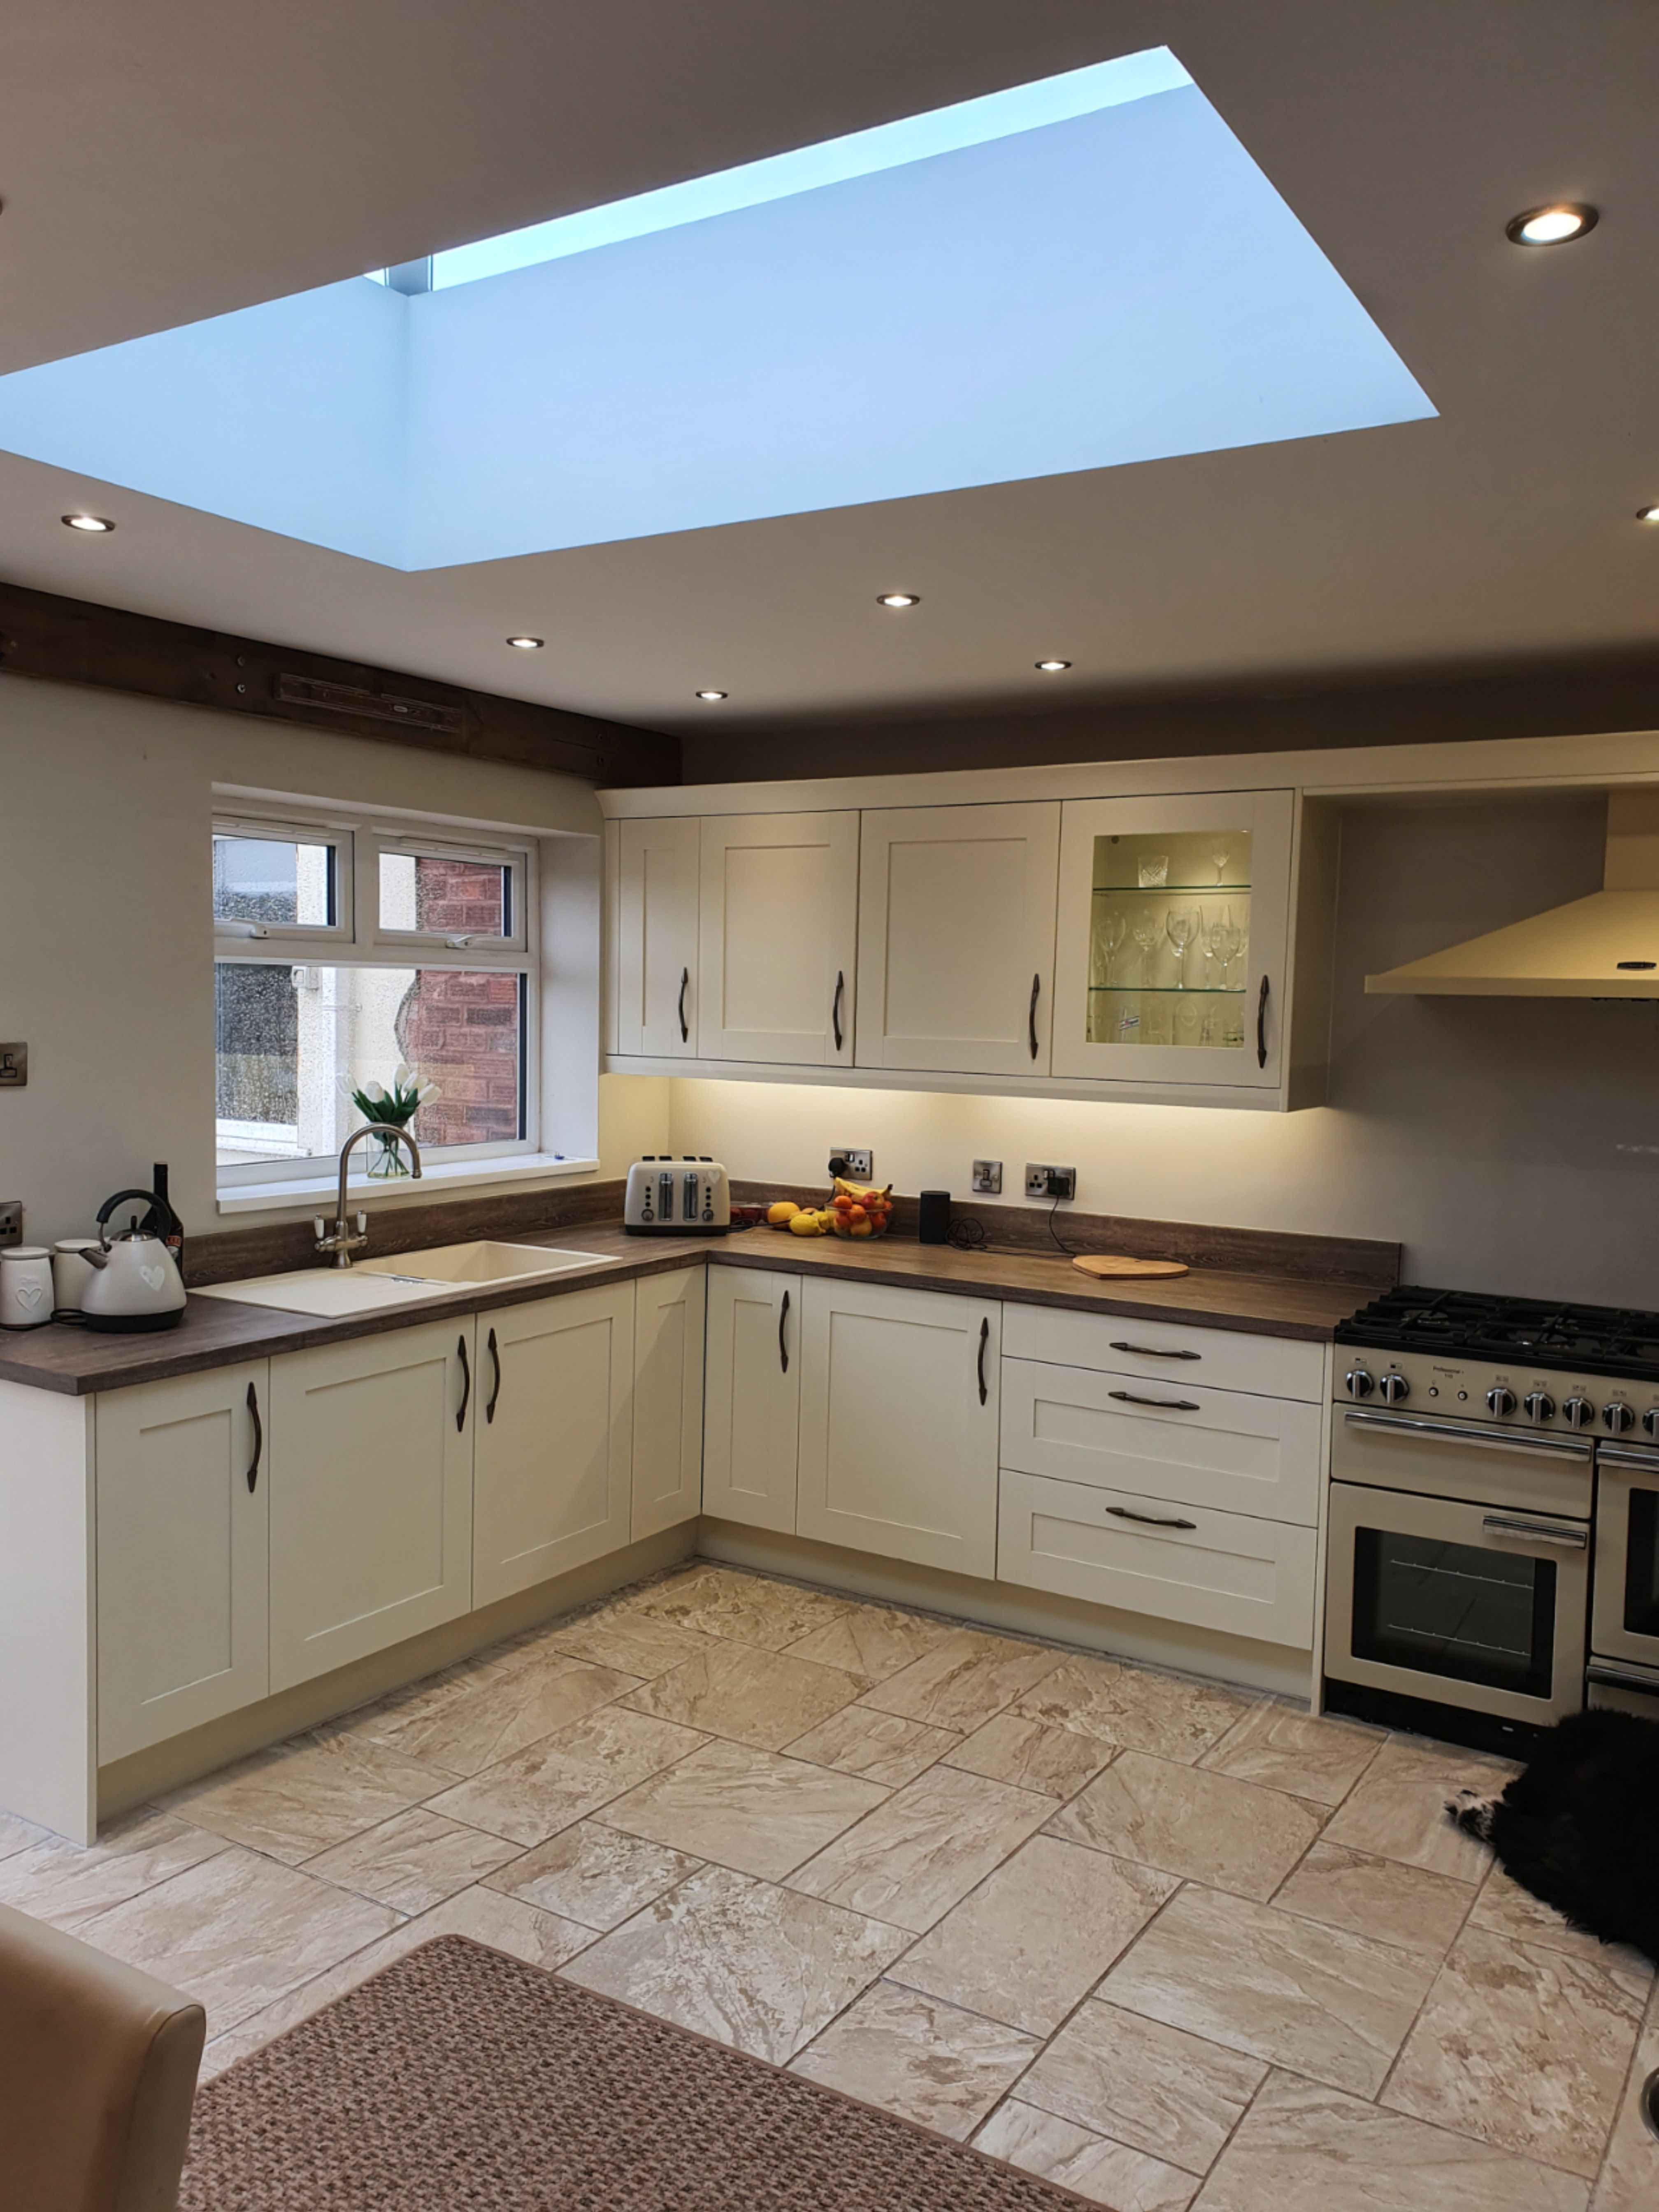 Pin on Our Rigid Kitchens